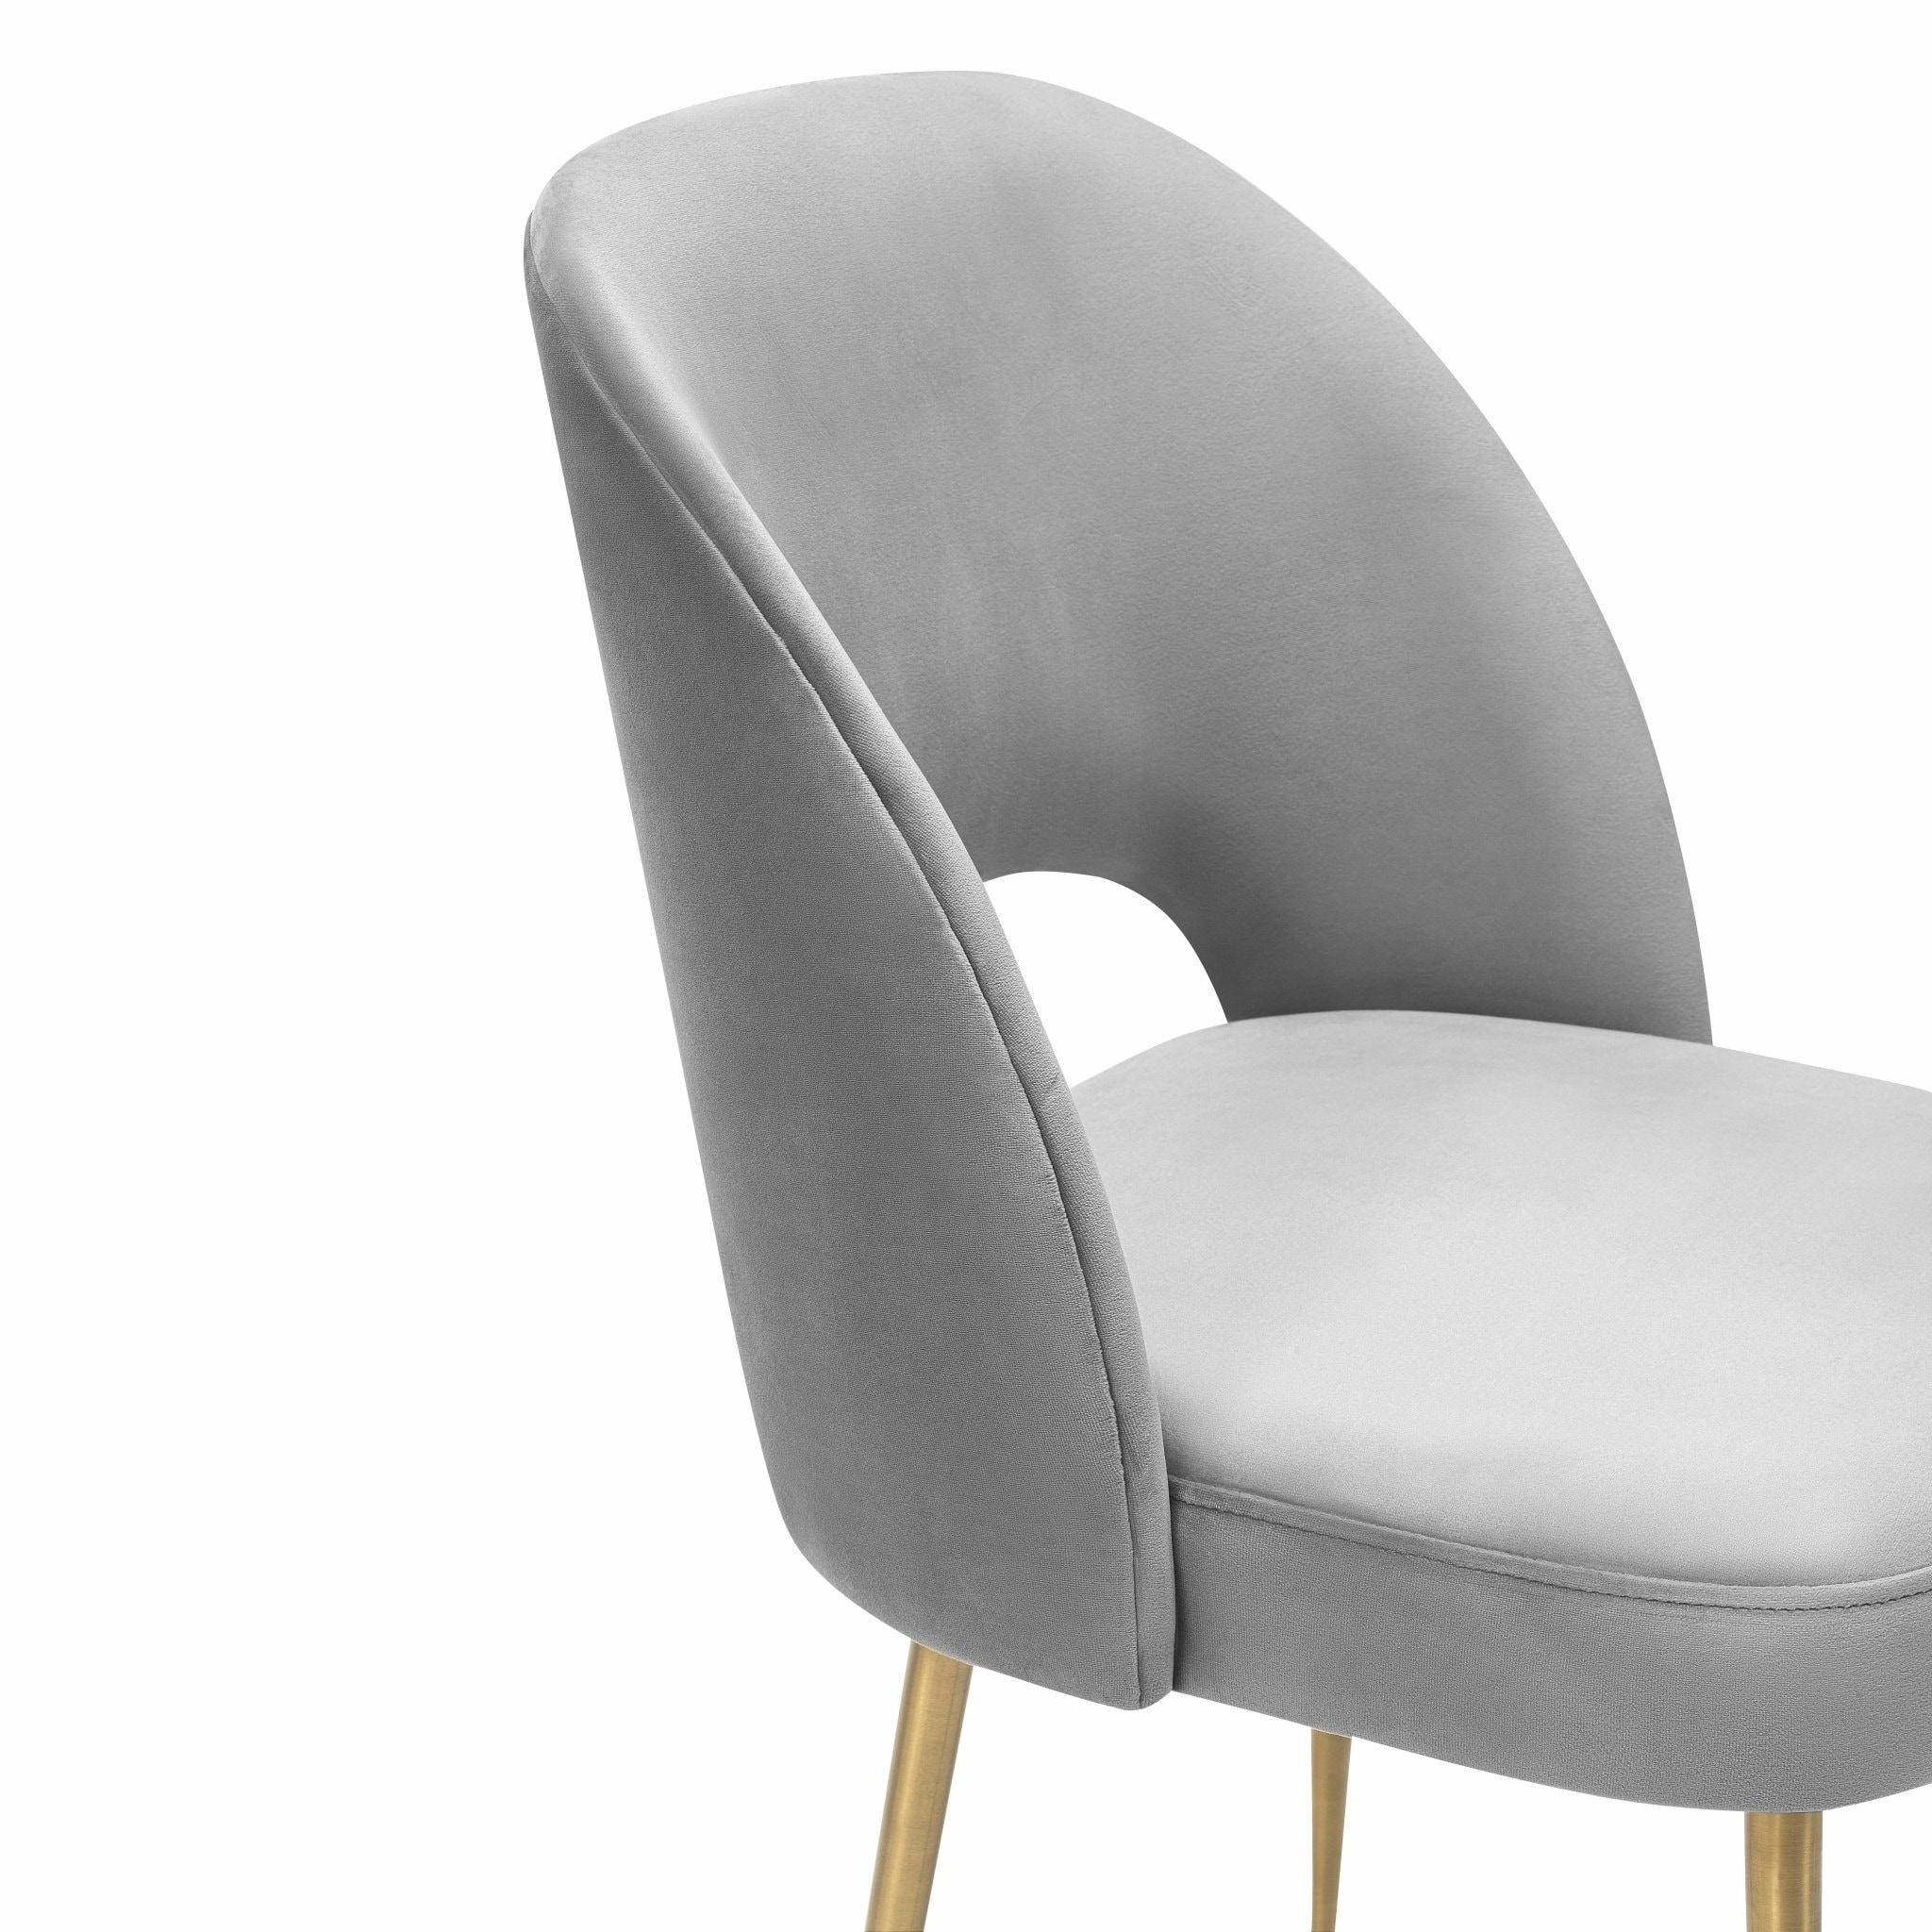 Swell Light Grey Velvet Chair Free Shipping Today 19398265